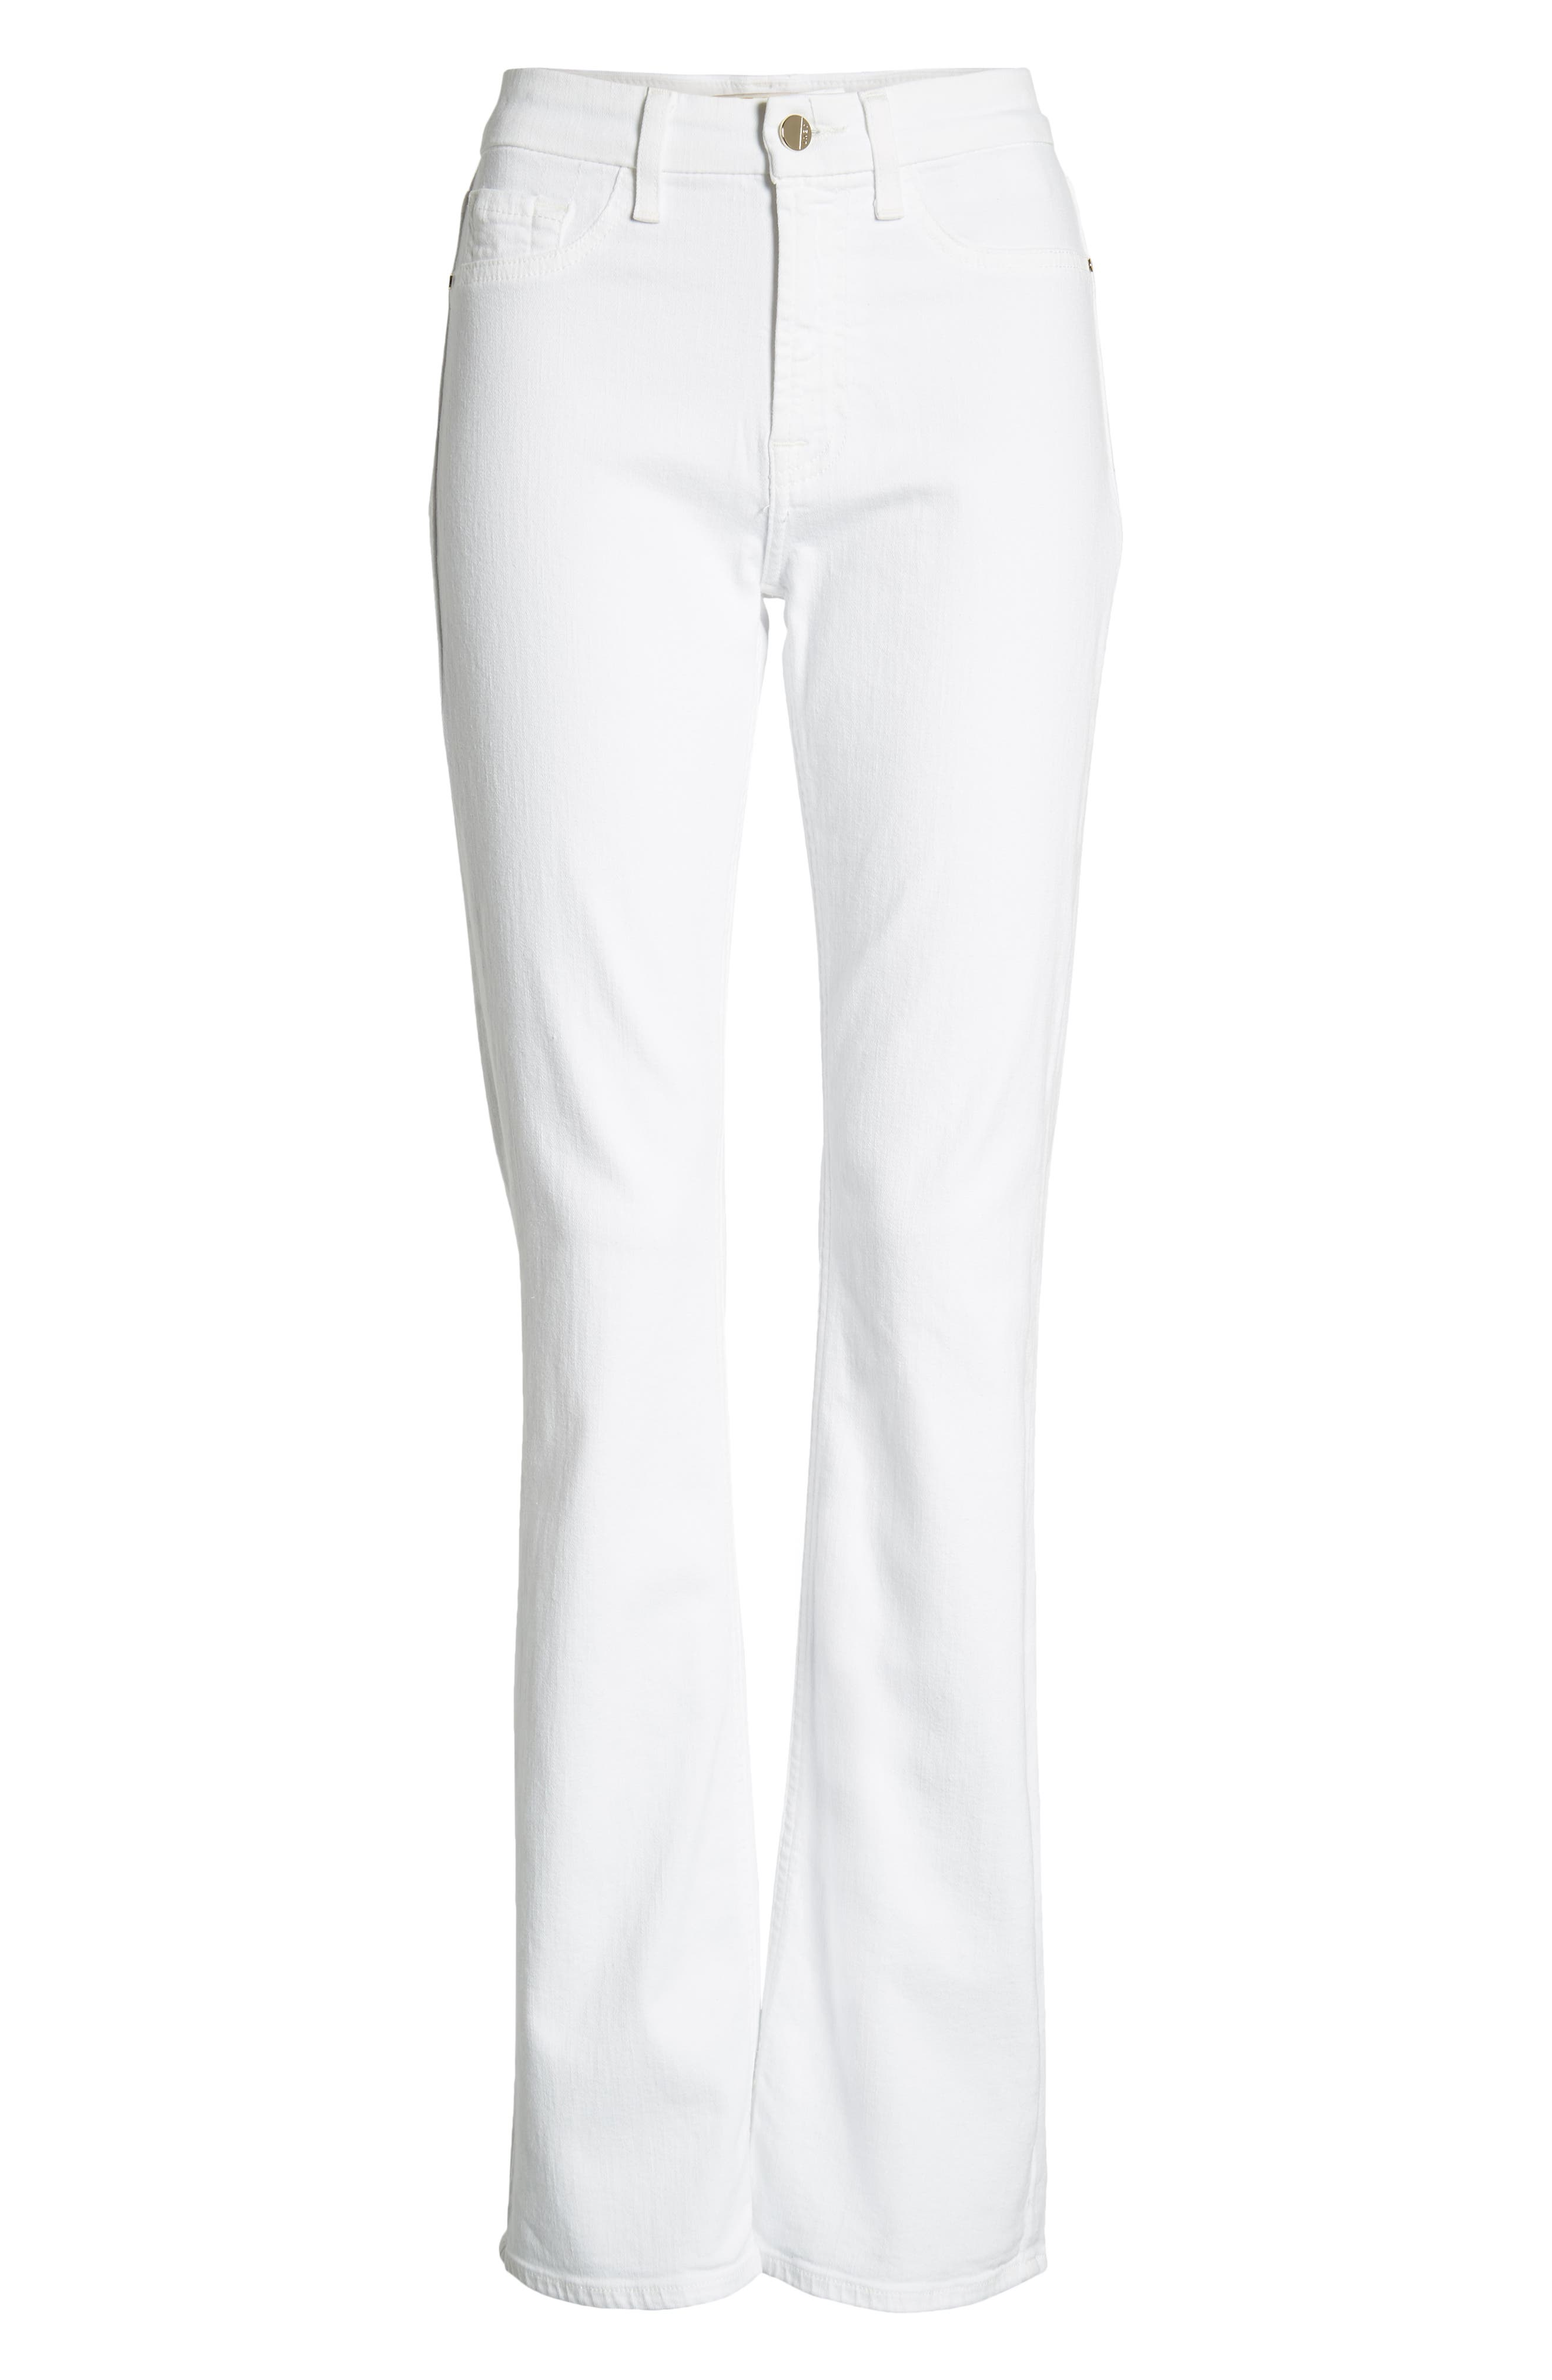 JEN7 BY 7 FOR ALL MANKIND, Slim Bootcut Jeans, Alternate thumbnail 7, color, WHITE